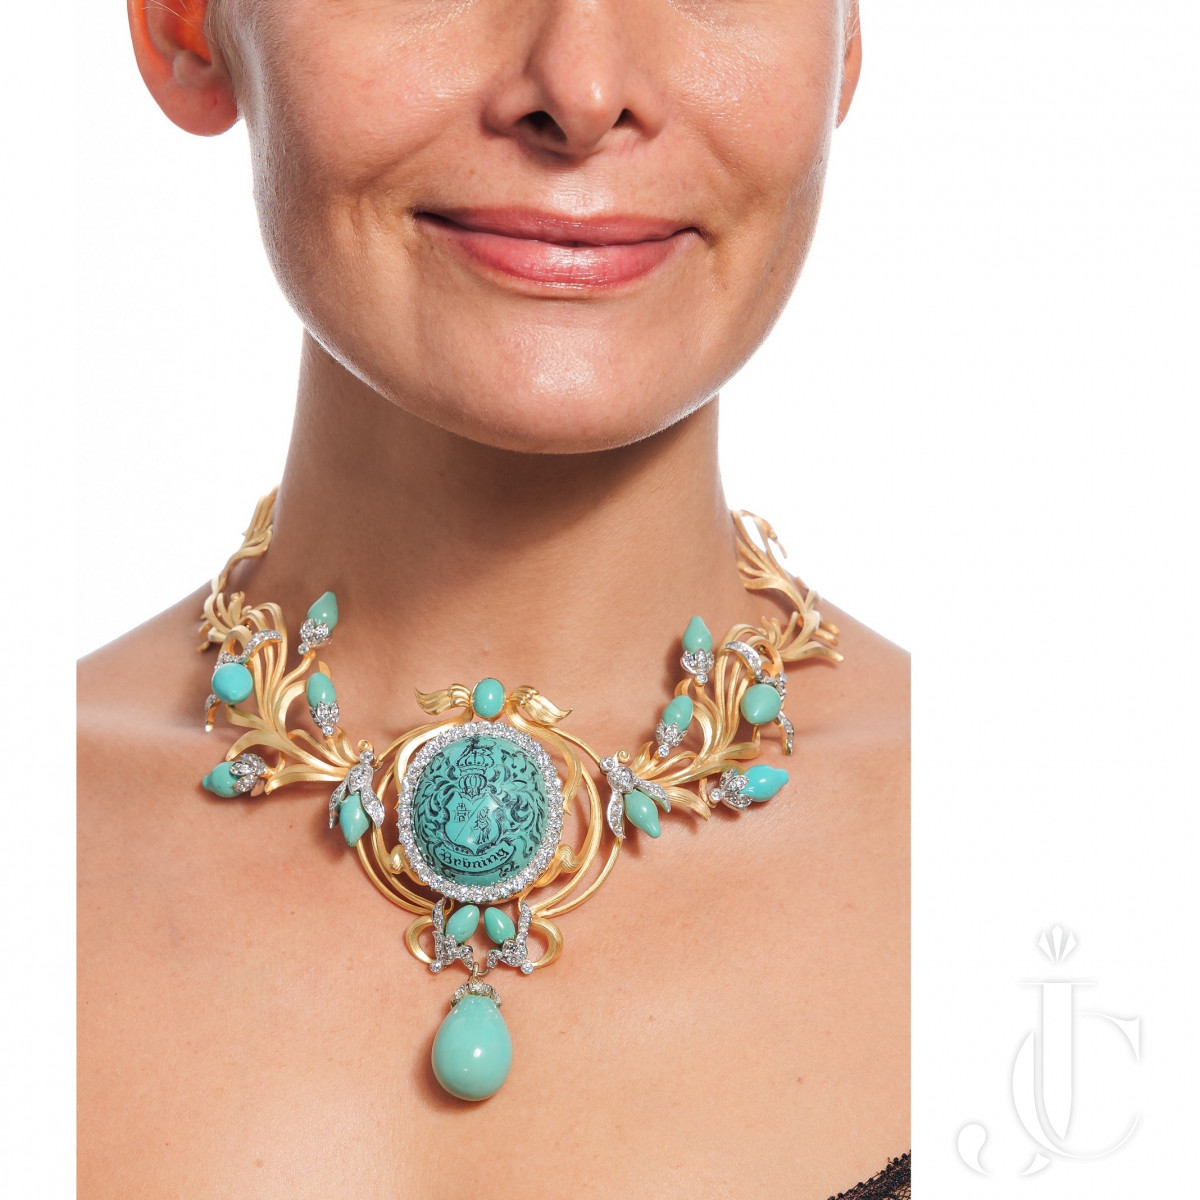 An 18k gold turquoise and diamond choker necklace